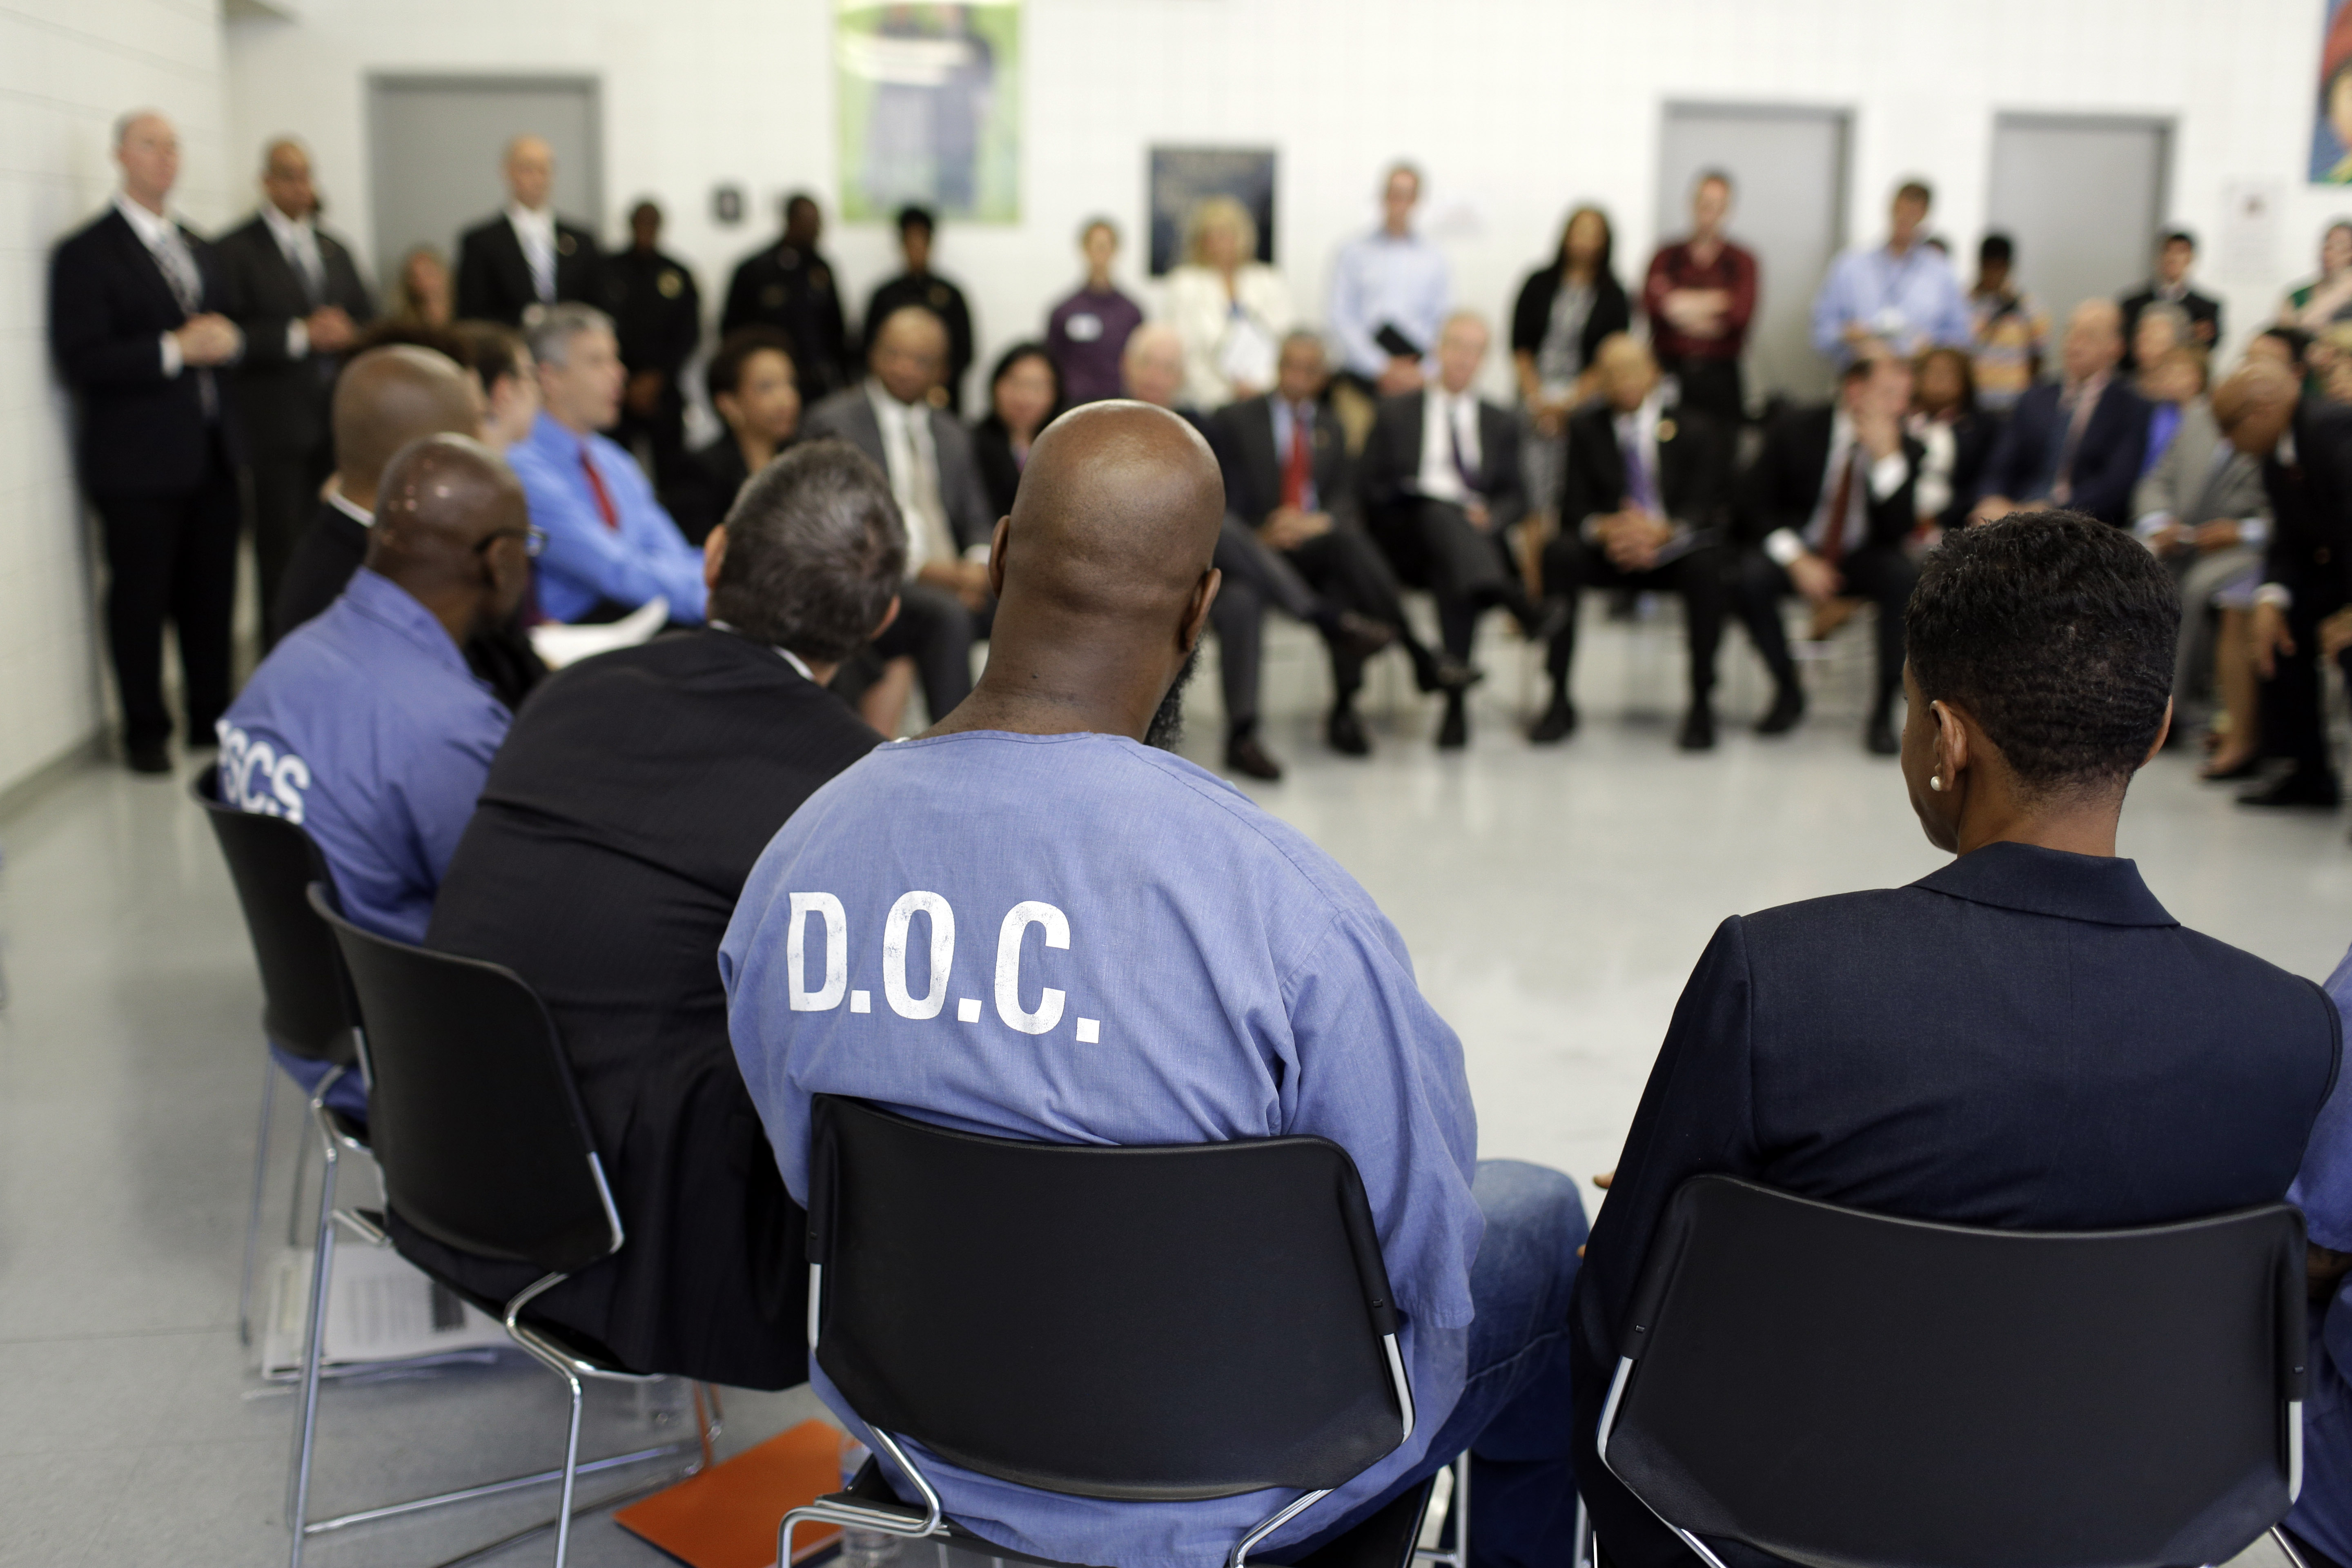 prison education Prison education programs threatened by matt clarke corrections officials across the country fear that two recent developments will drastically limit educational opportunities for prisoners - a scenario that research indicates could lead to higher recidivism rates.